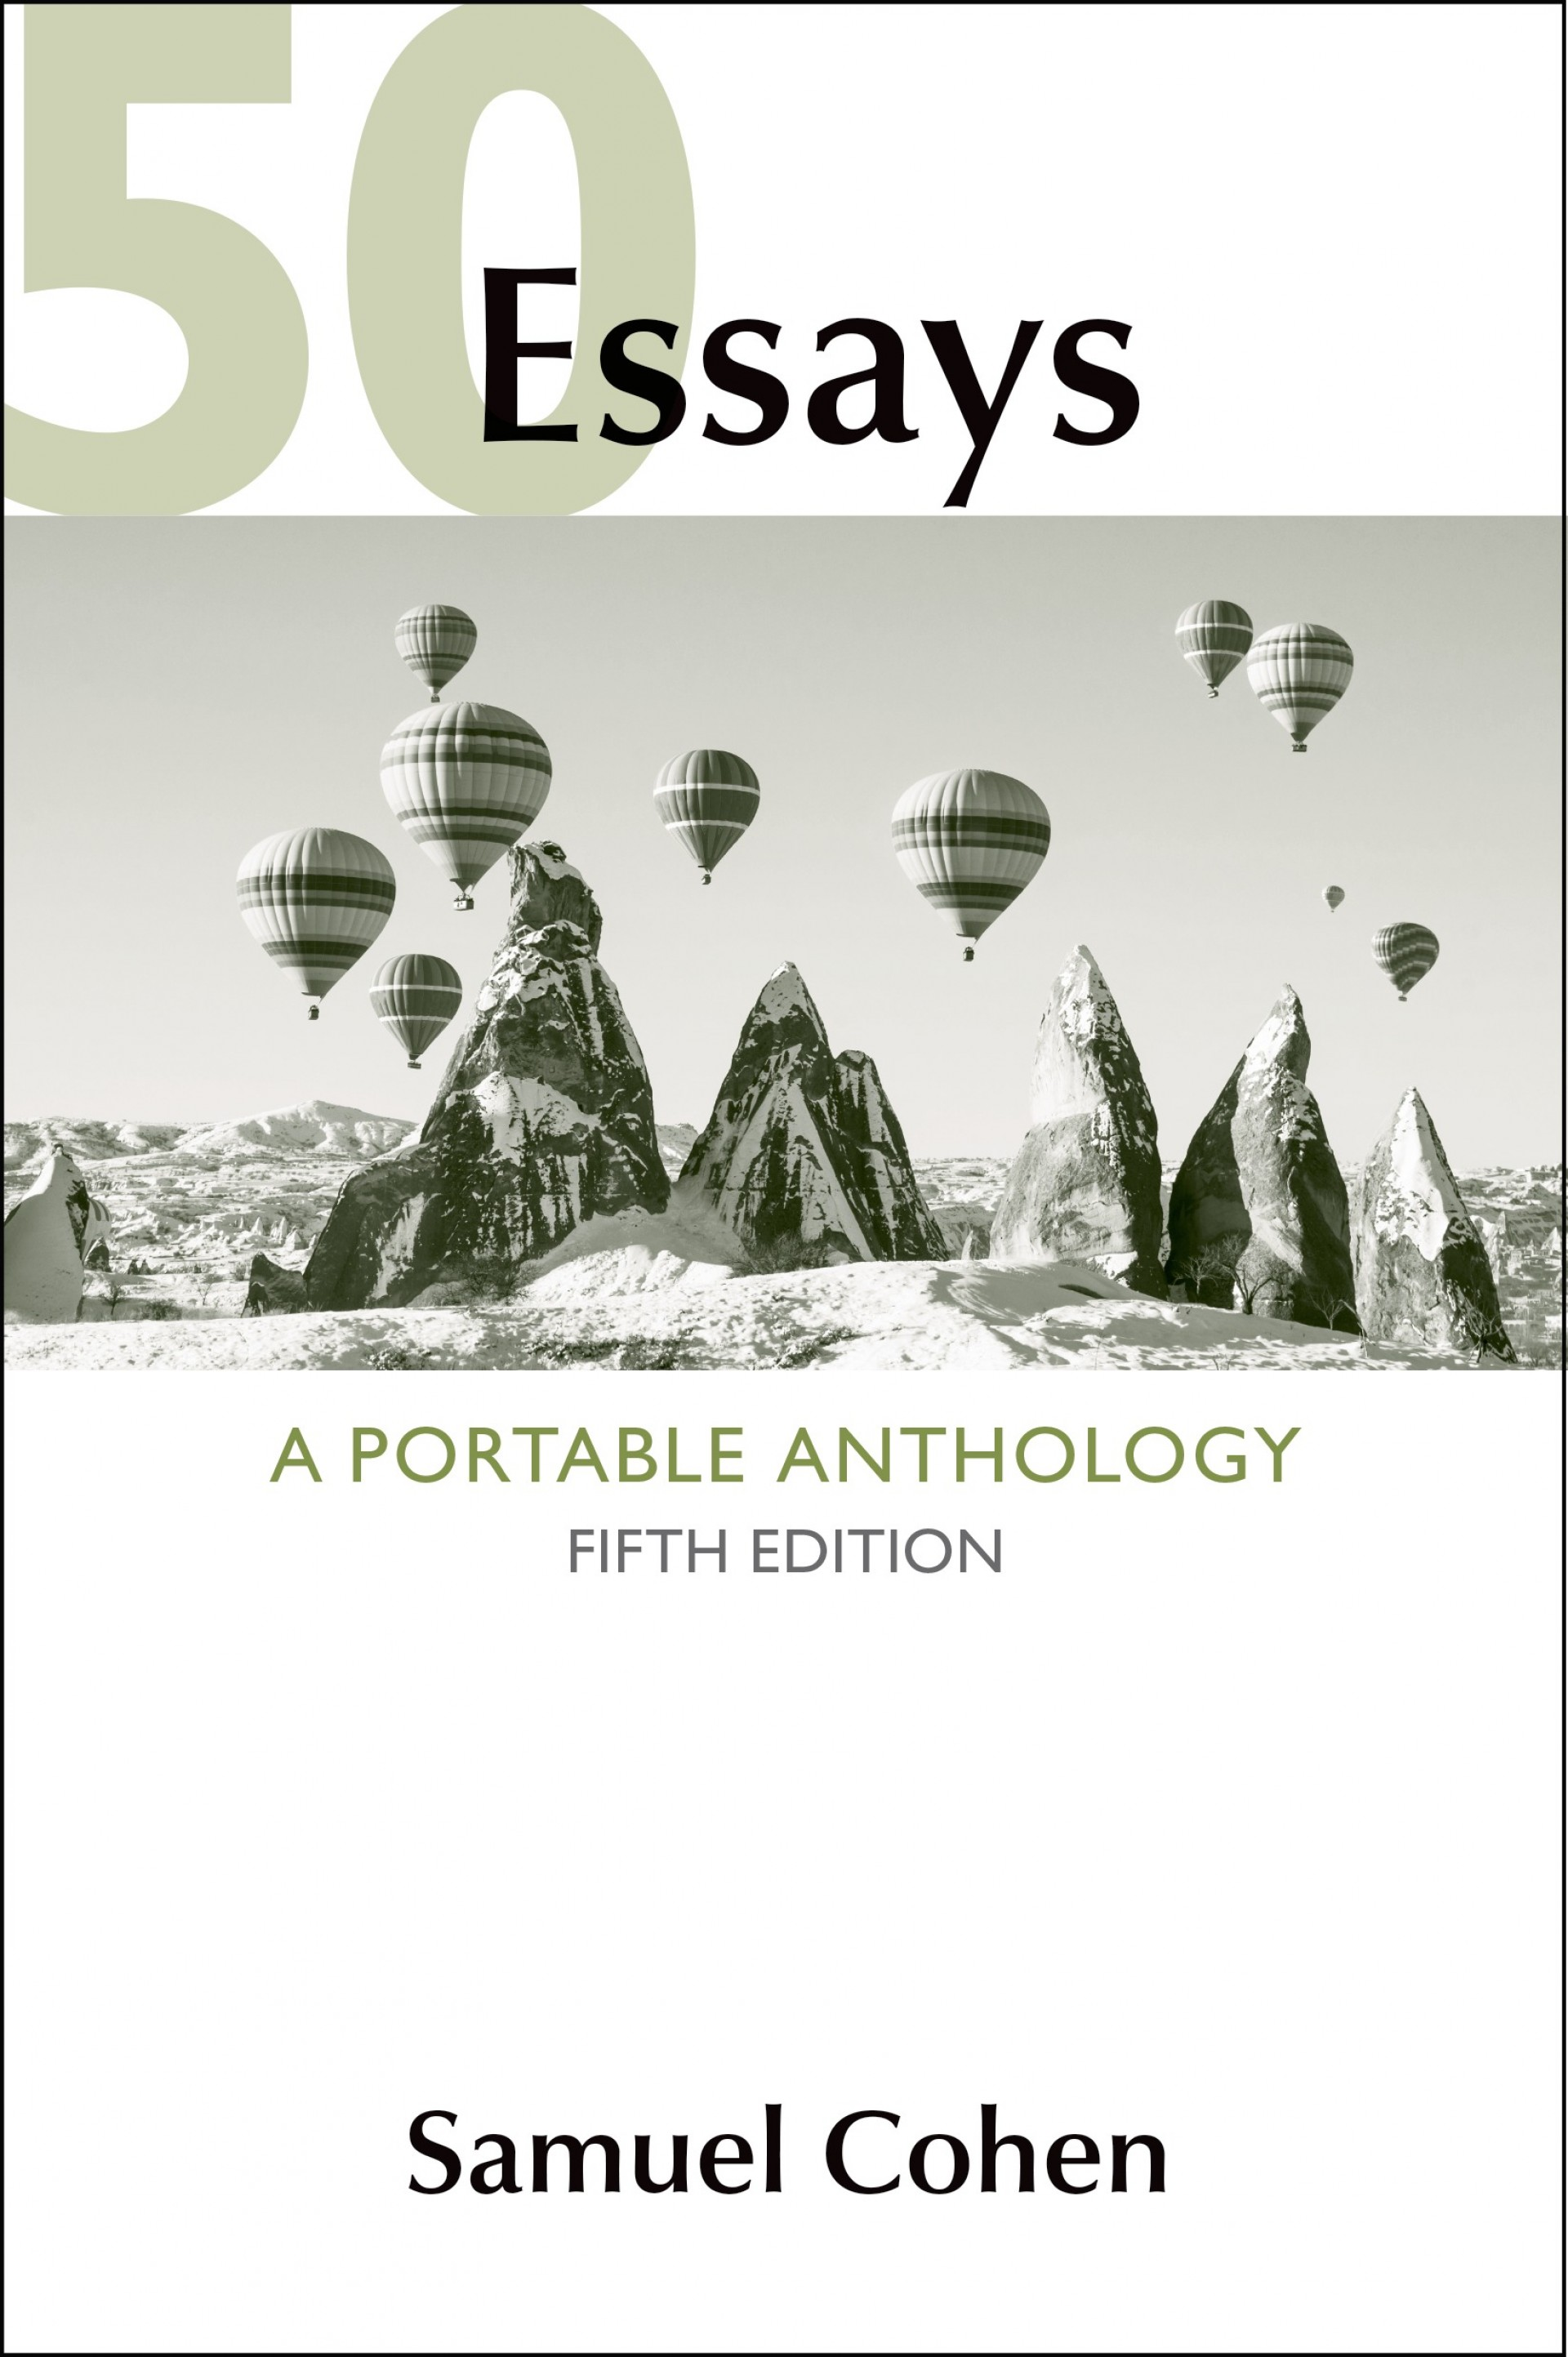 012 Real Essays With Readings 5th Edition Essay Wonderful Answer Key Online Ebook 1920